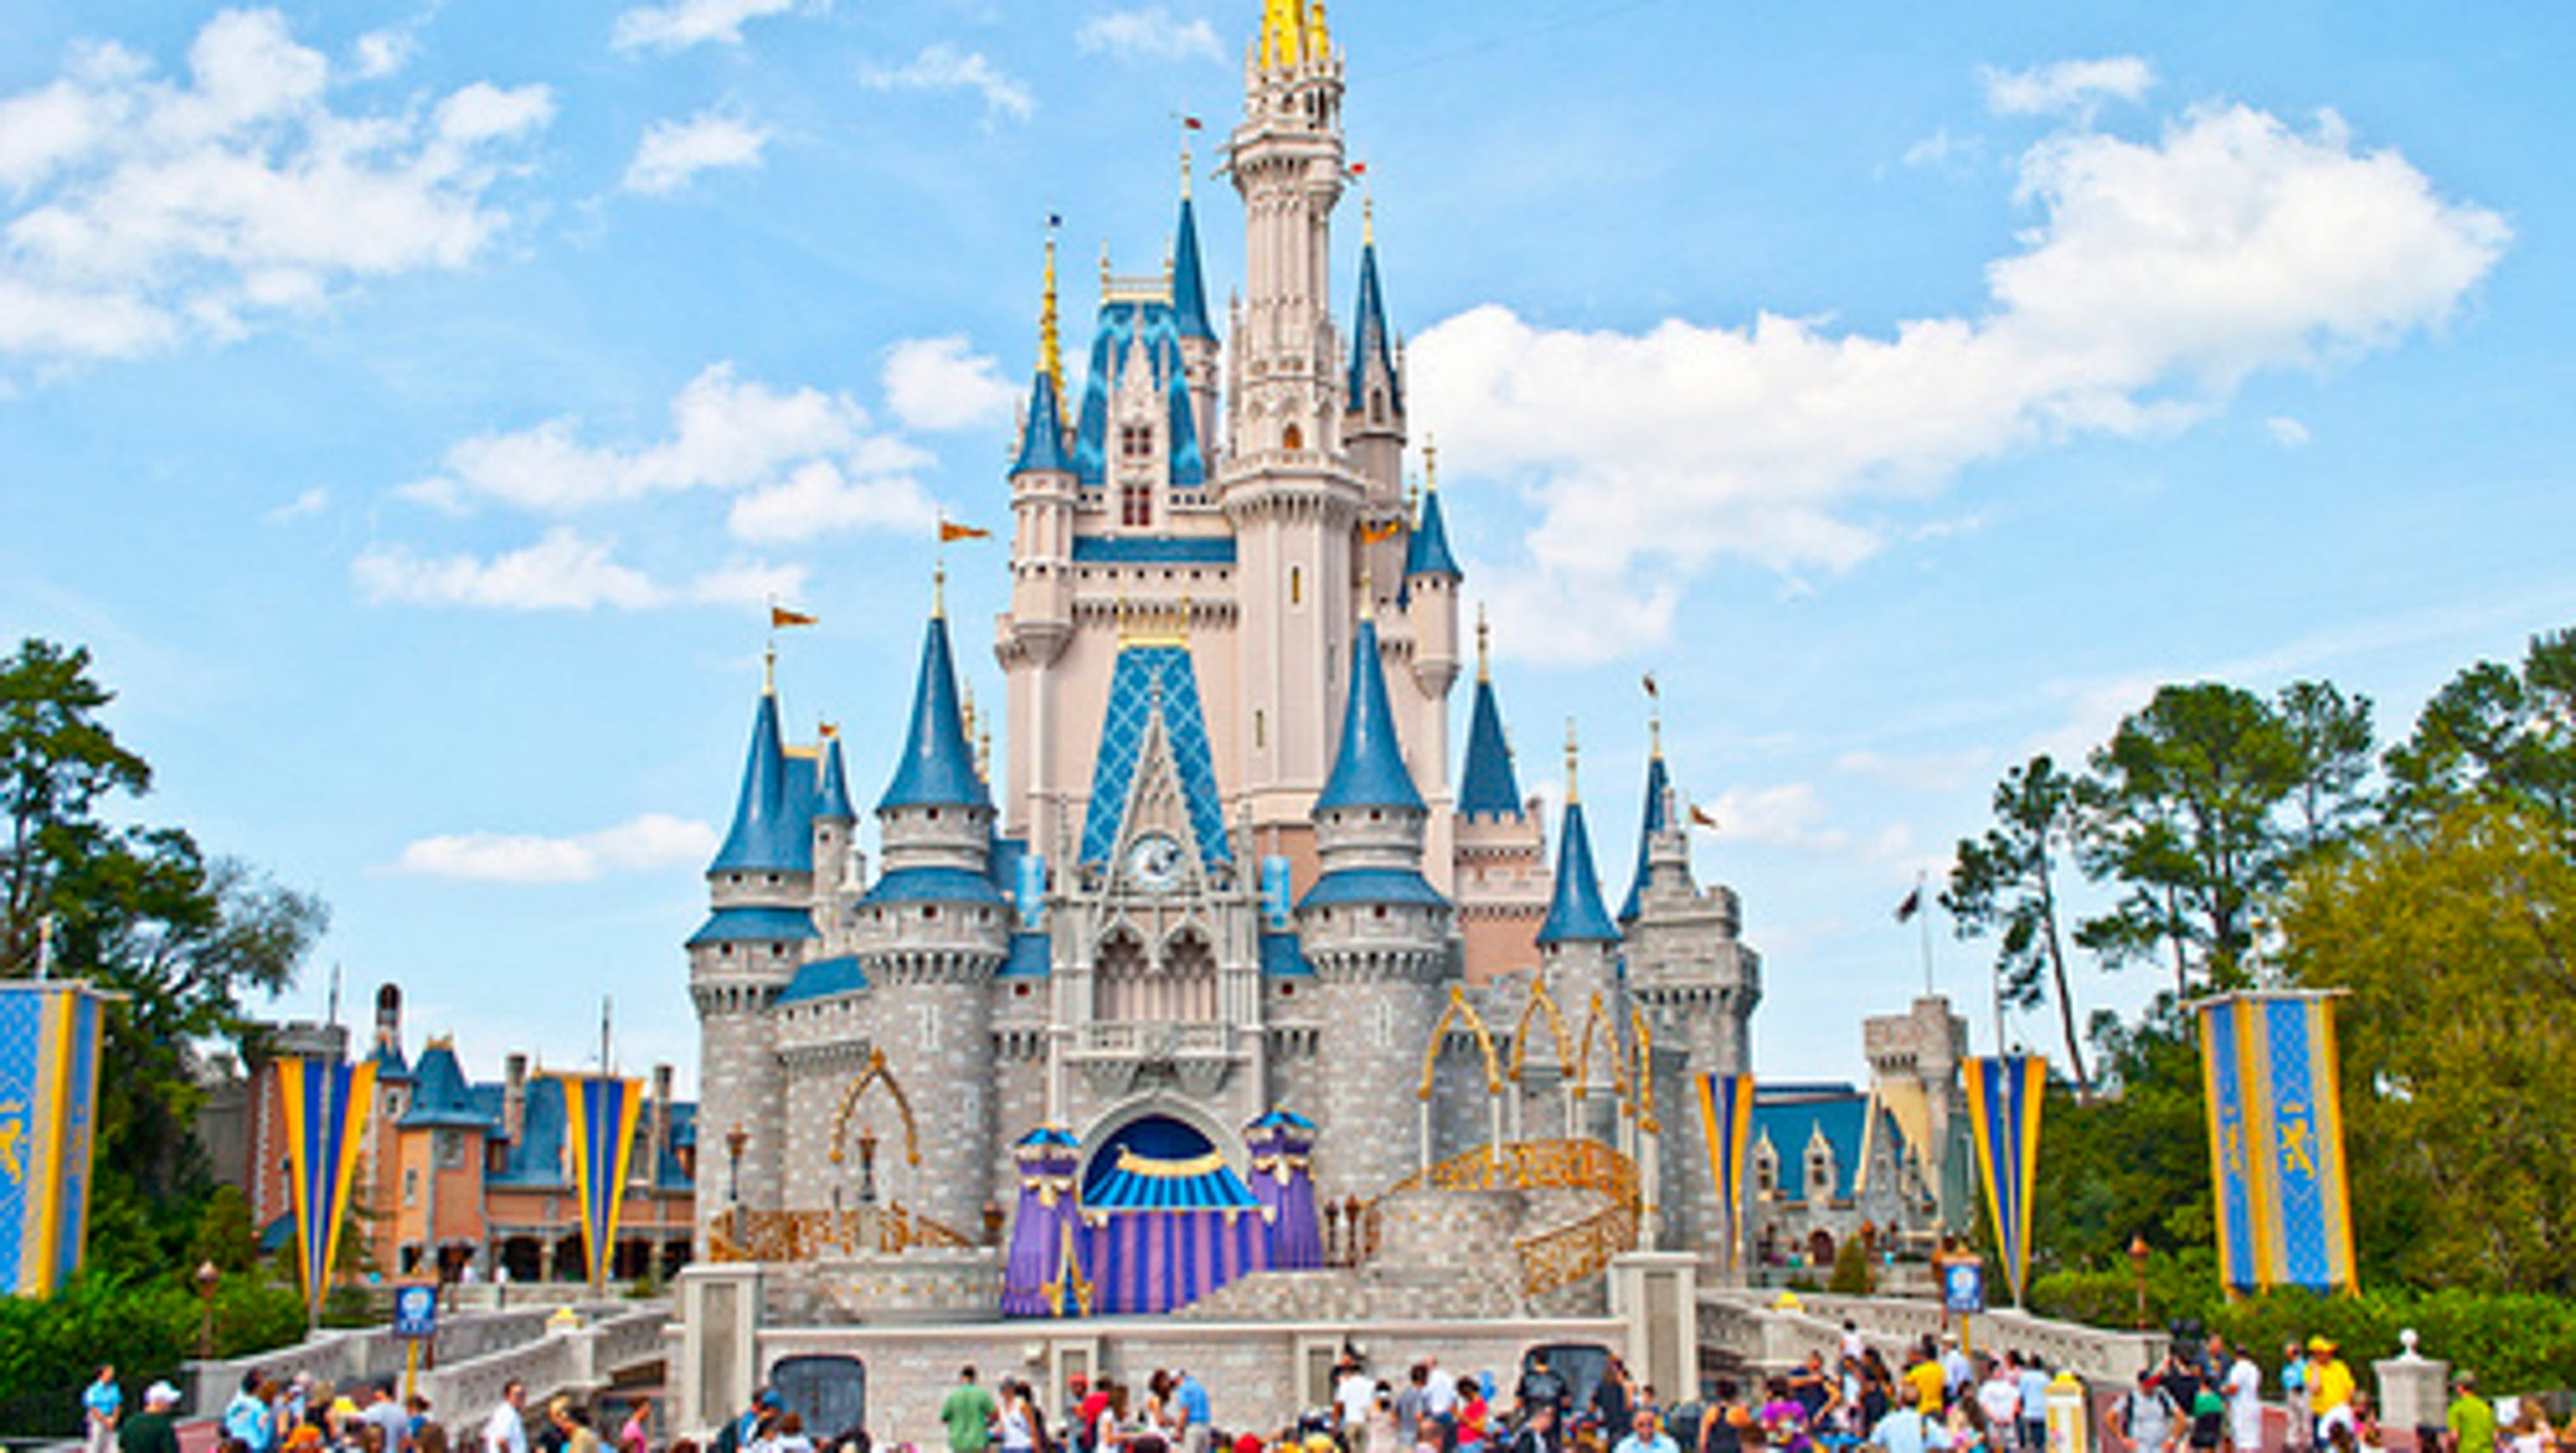 Save On A Trip To Walt Disney World. Culinary Arts Colleges In Chicago. Business School Prerequisites. Mobile Phones For Business Ubuntu Ftp Server. Walk In Clinic Naperville Il. Fha Home Equity Conversion Mortgage. Computer Program Courses Hidden Security Cams. Everest Nursing Program Insurance Direct Auto. Nursing Informatics Competencies